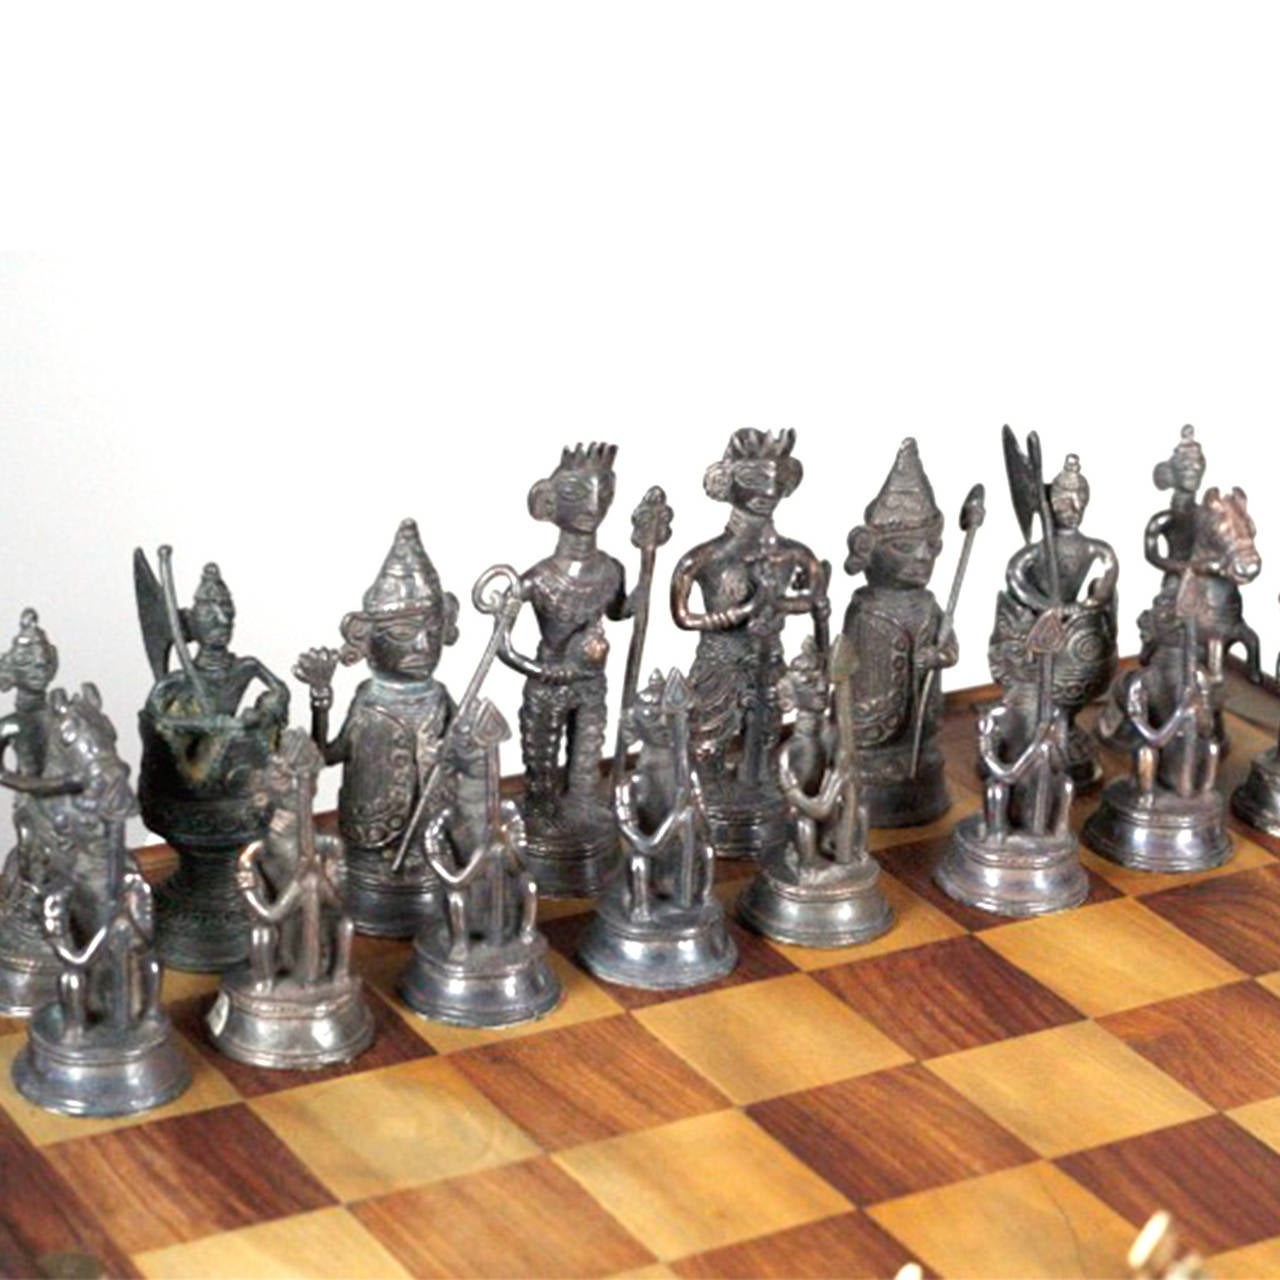 Steel Chess Set Midcentury Indian Chess Set With Solid Brass Chess Pieces At 1Stdibs